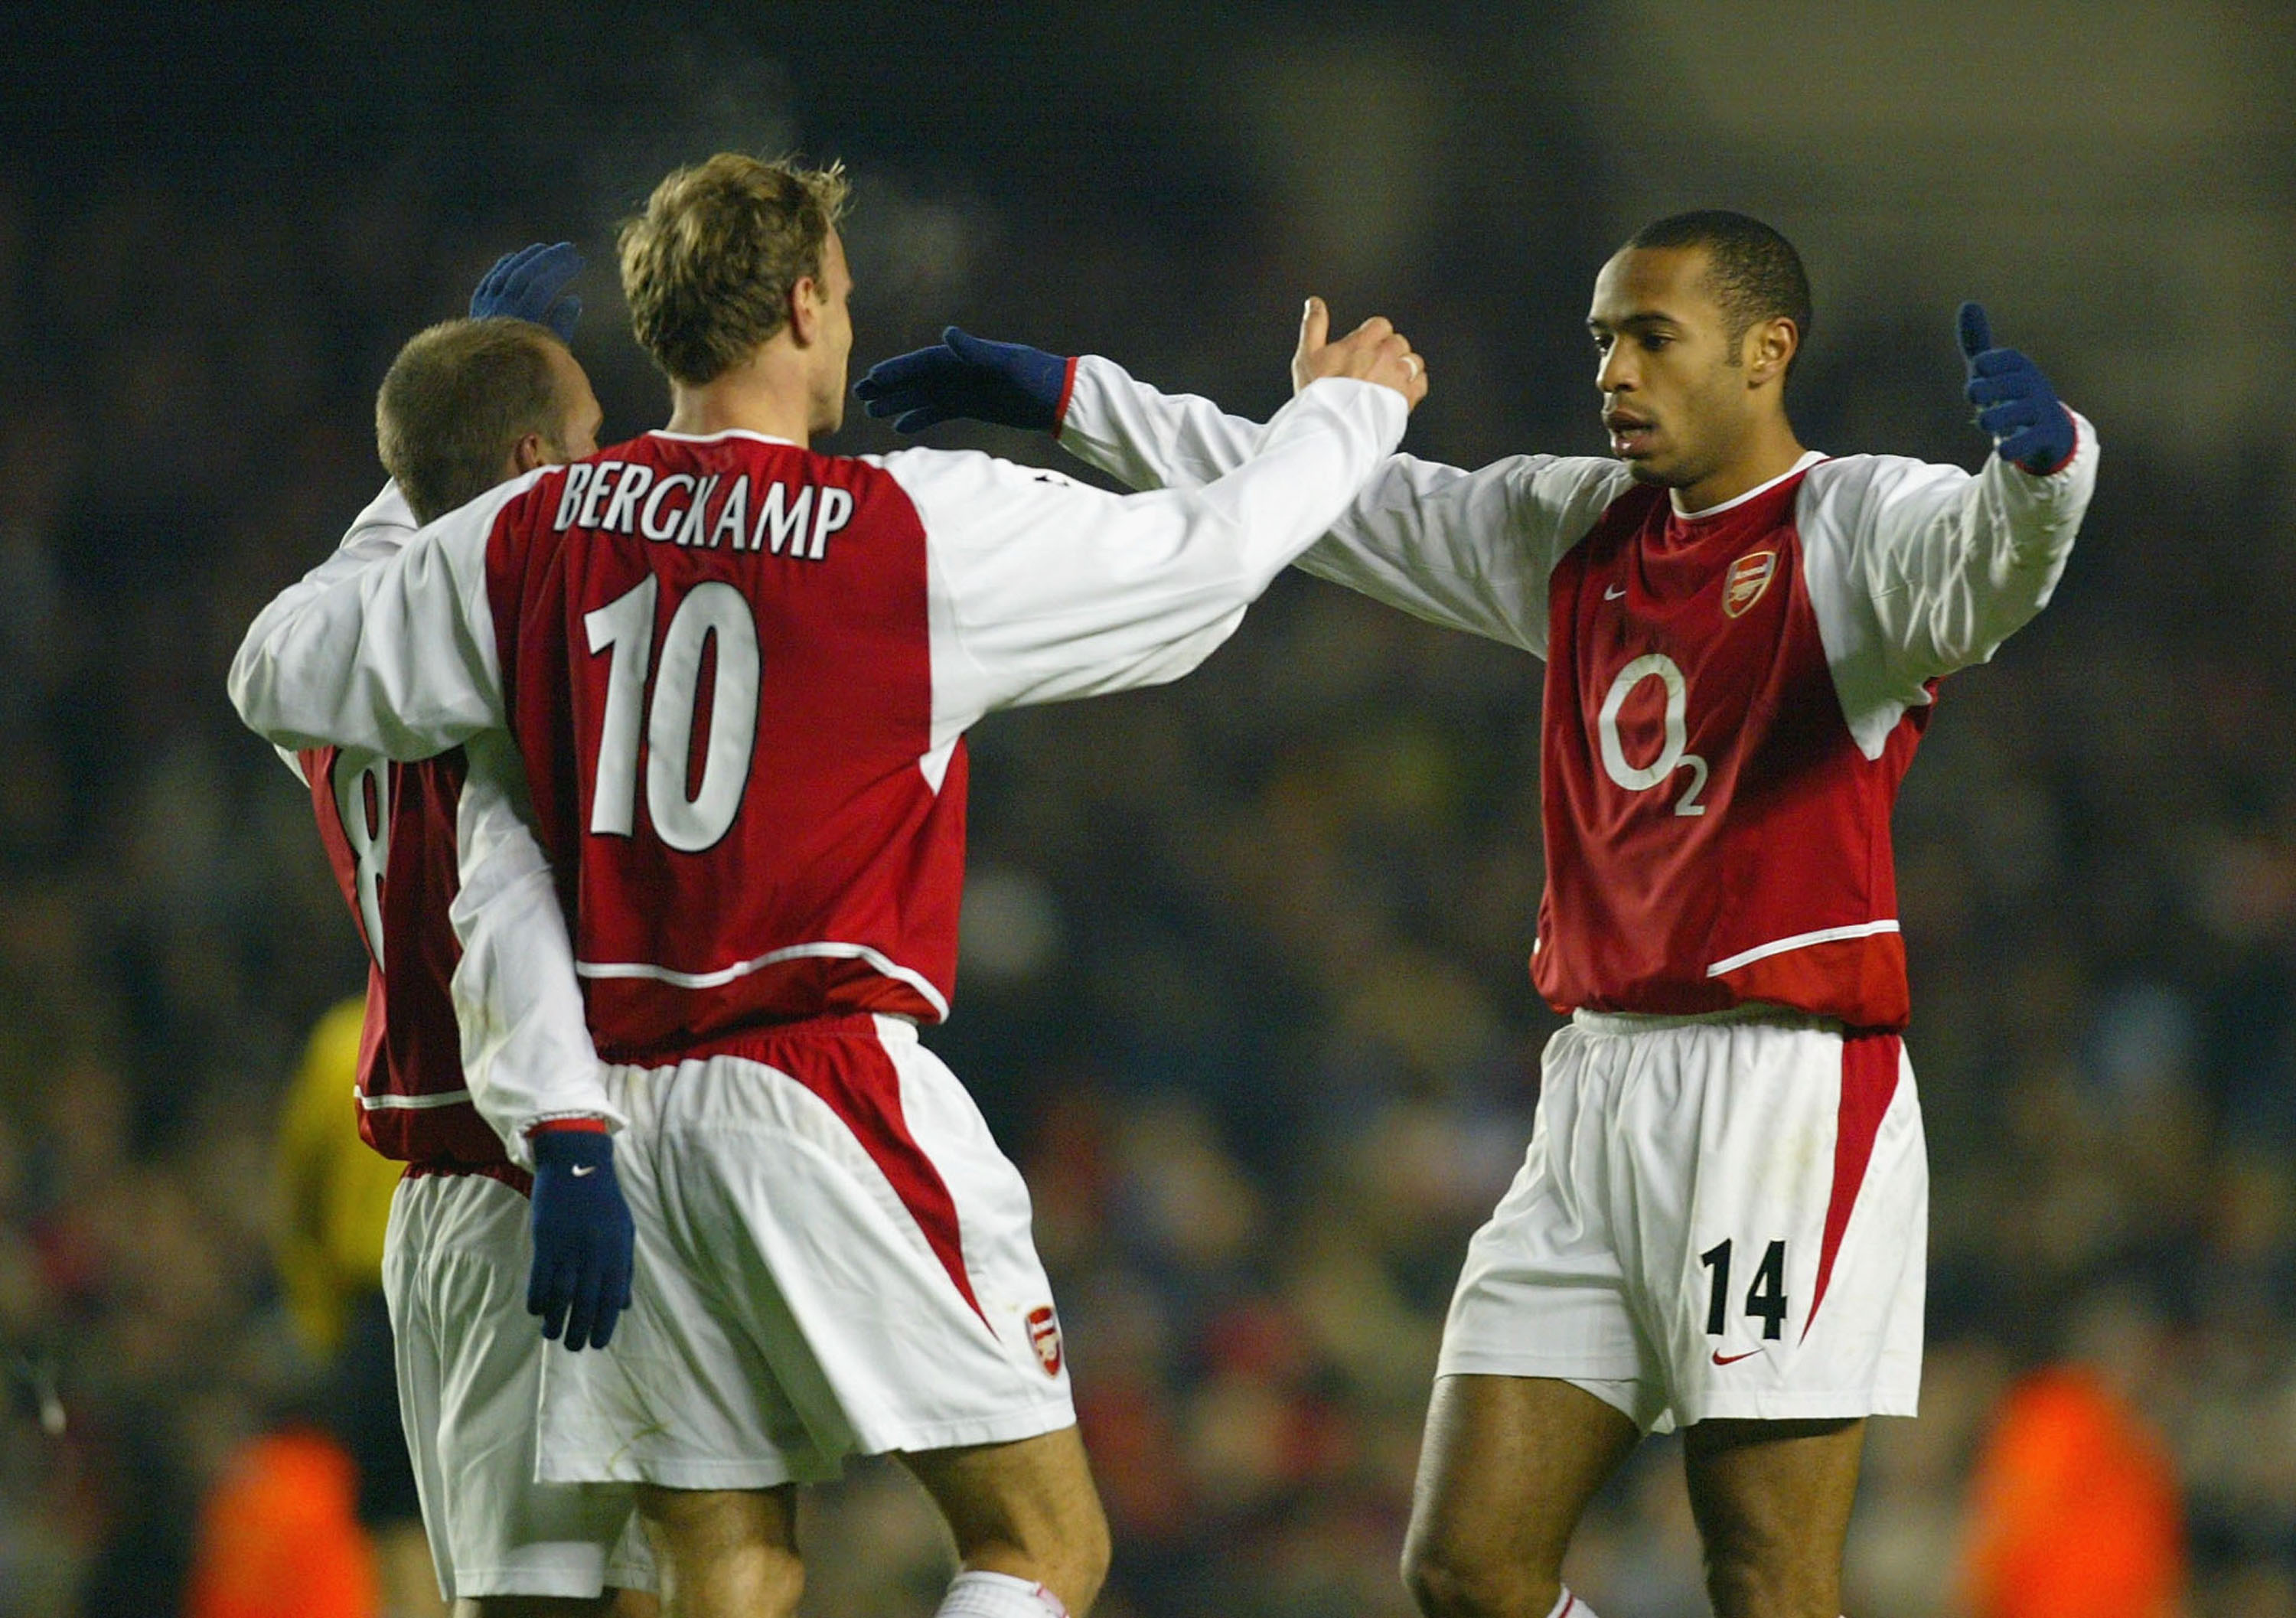 LONDON - DECEMBER 10:  Thierry Henry of Arsenal celebrates with Dennis Bergkamp and  Fredrik Ljungberg after Fredrik Ljungberg scored the second goal for Arsenal during the UEFA Champions League Group B match between Arsenal and Lokomotiv Moscow at Highbu